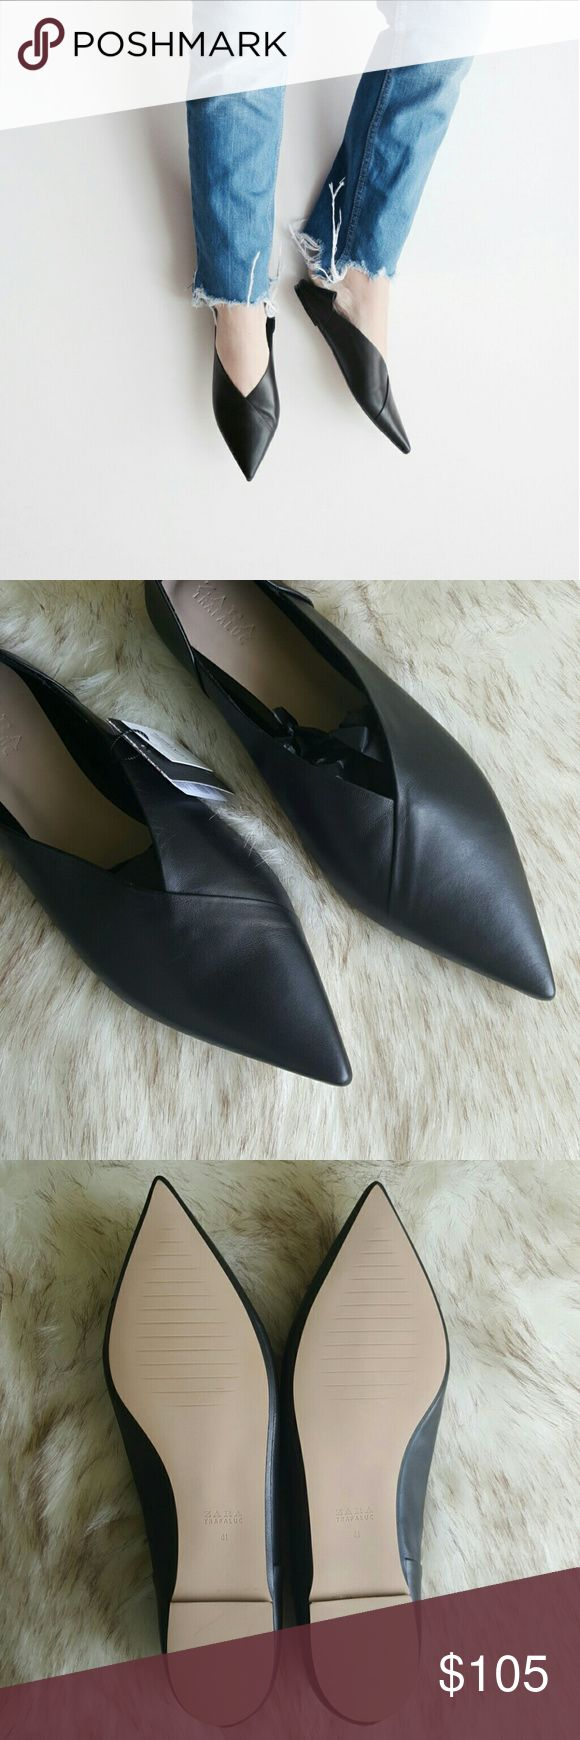 ZARA leather babouches Black authentic leather babouches. Never been worn and tags are still attached. In typical babouche fashion the backs can be pushed down so they look like mules.   These are a size 41 in zara which best fits a size 10 not an 11.   Come with dust bag.    PRICE IS FIRM. Zara Shoes Flats & Loafers